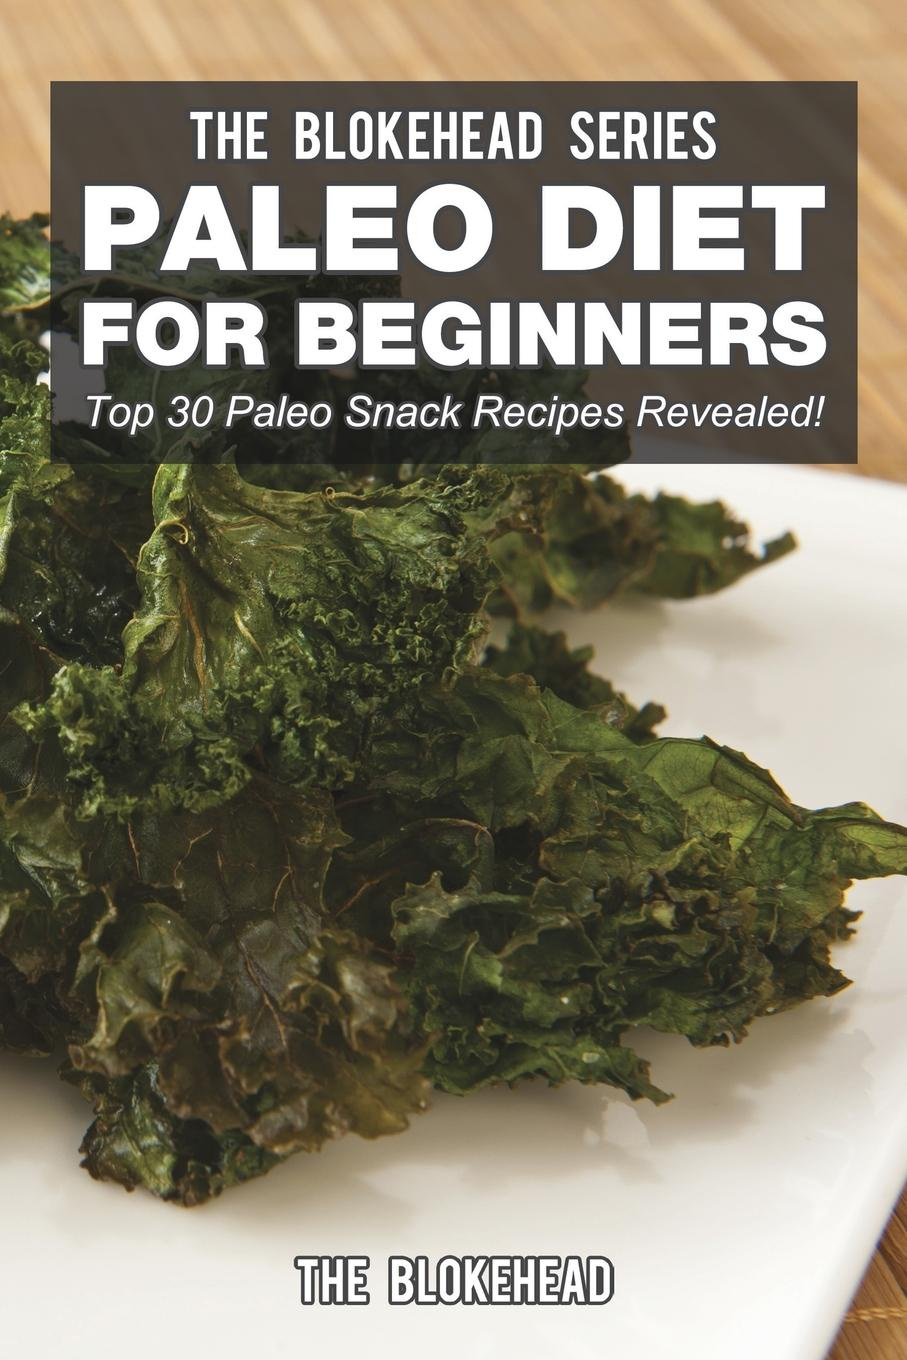 The Blokehead Paleo Diet For Beginners. Top 30 Paleo Snack Recipes Revealed! sela tsp 211 1132 7141